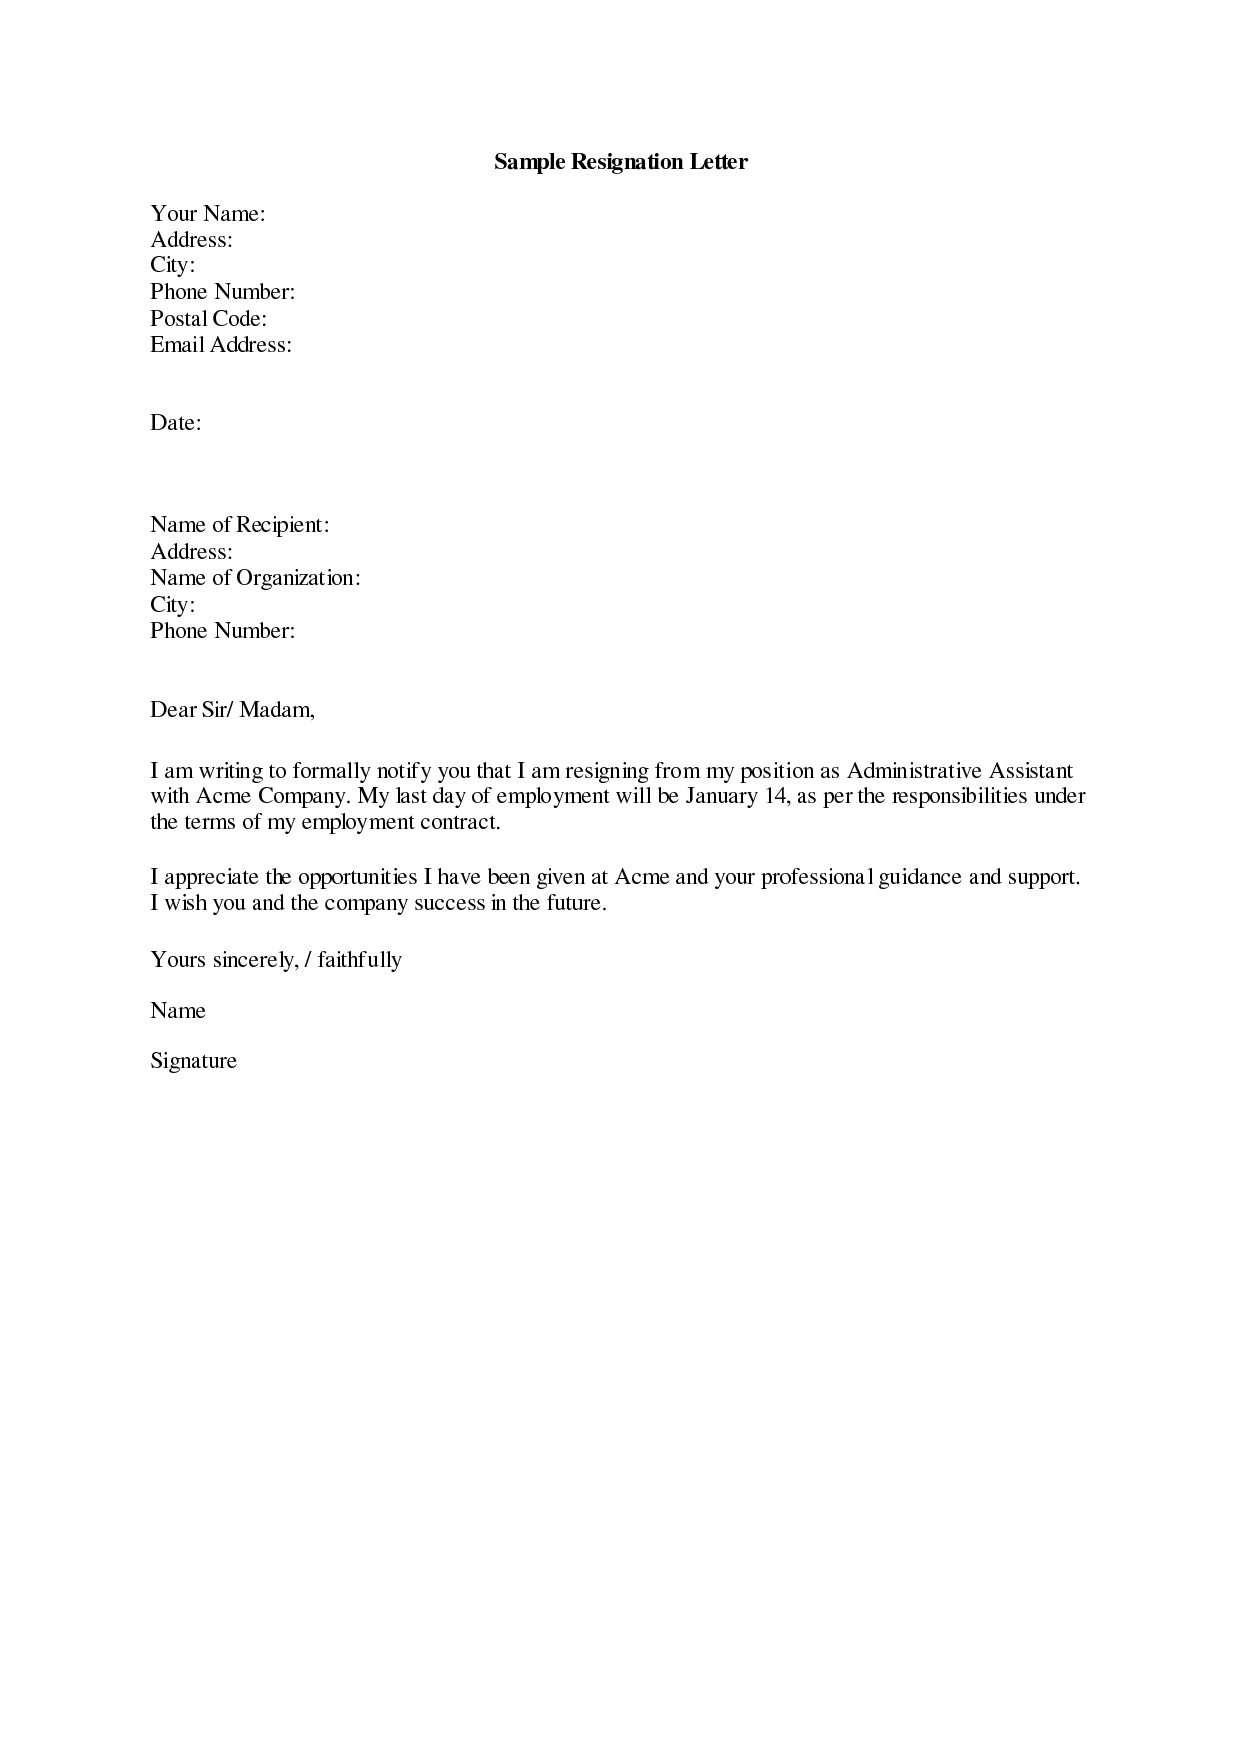 Short Resignation Letter Template - Resignation Letter Sample 19 Letter Of Resignation